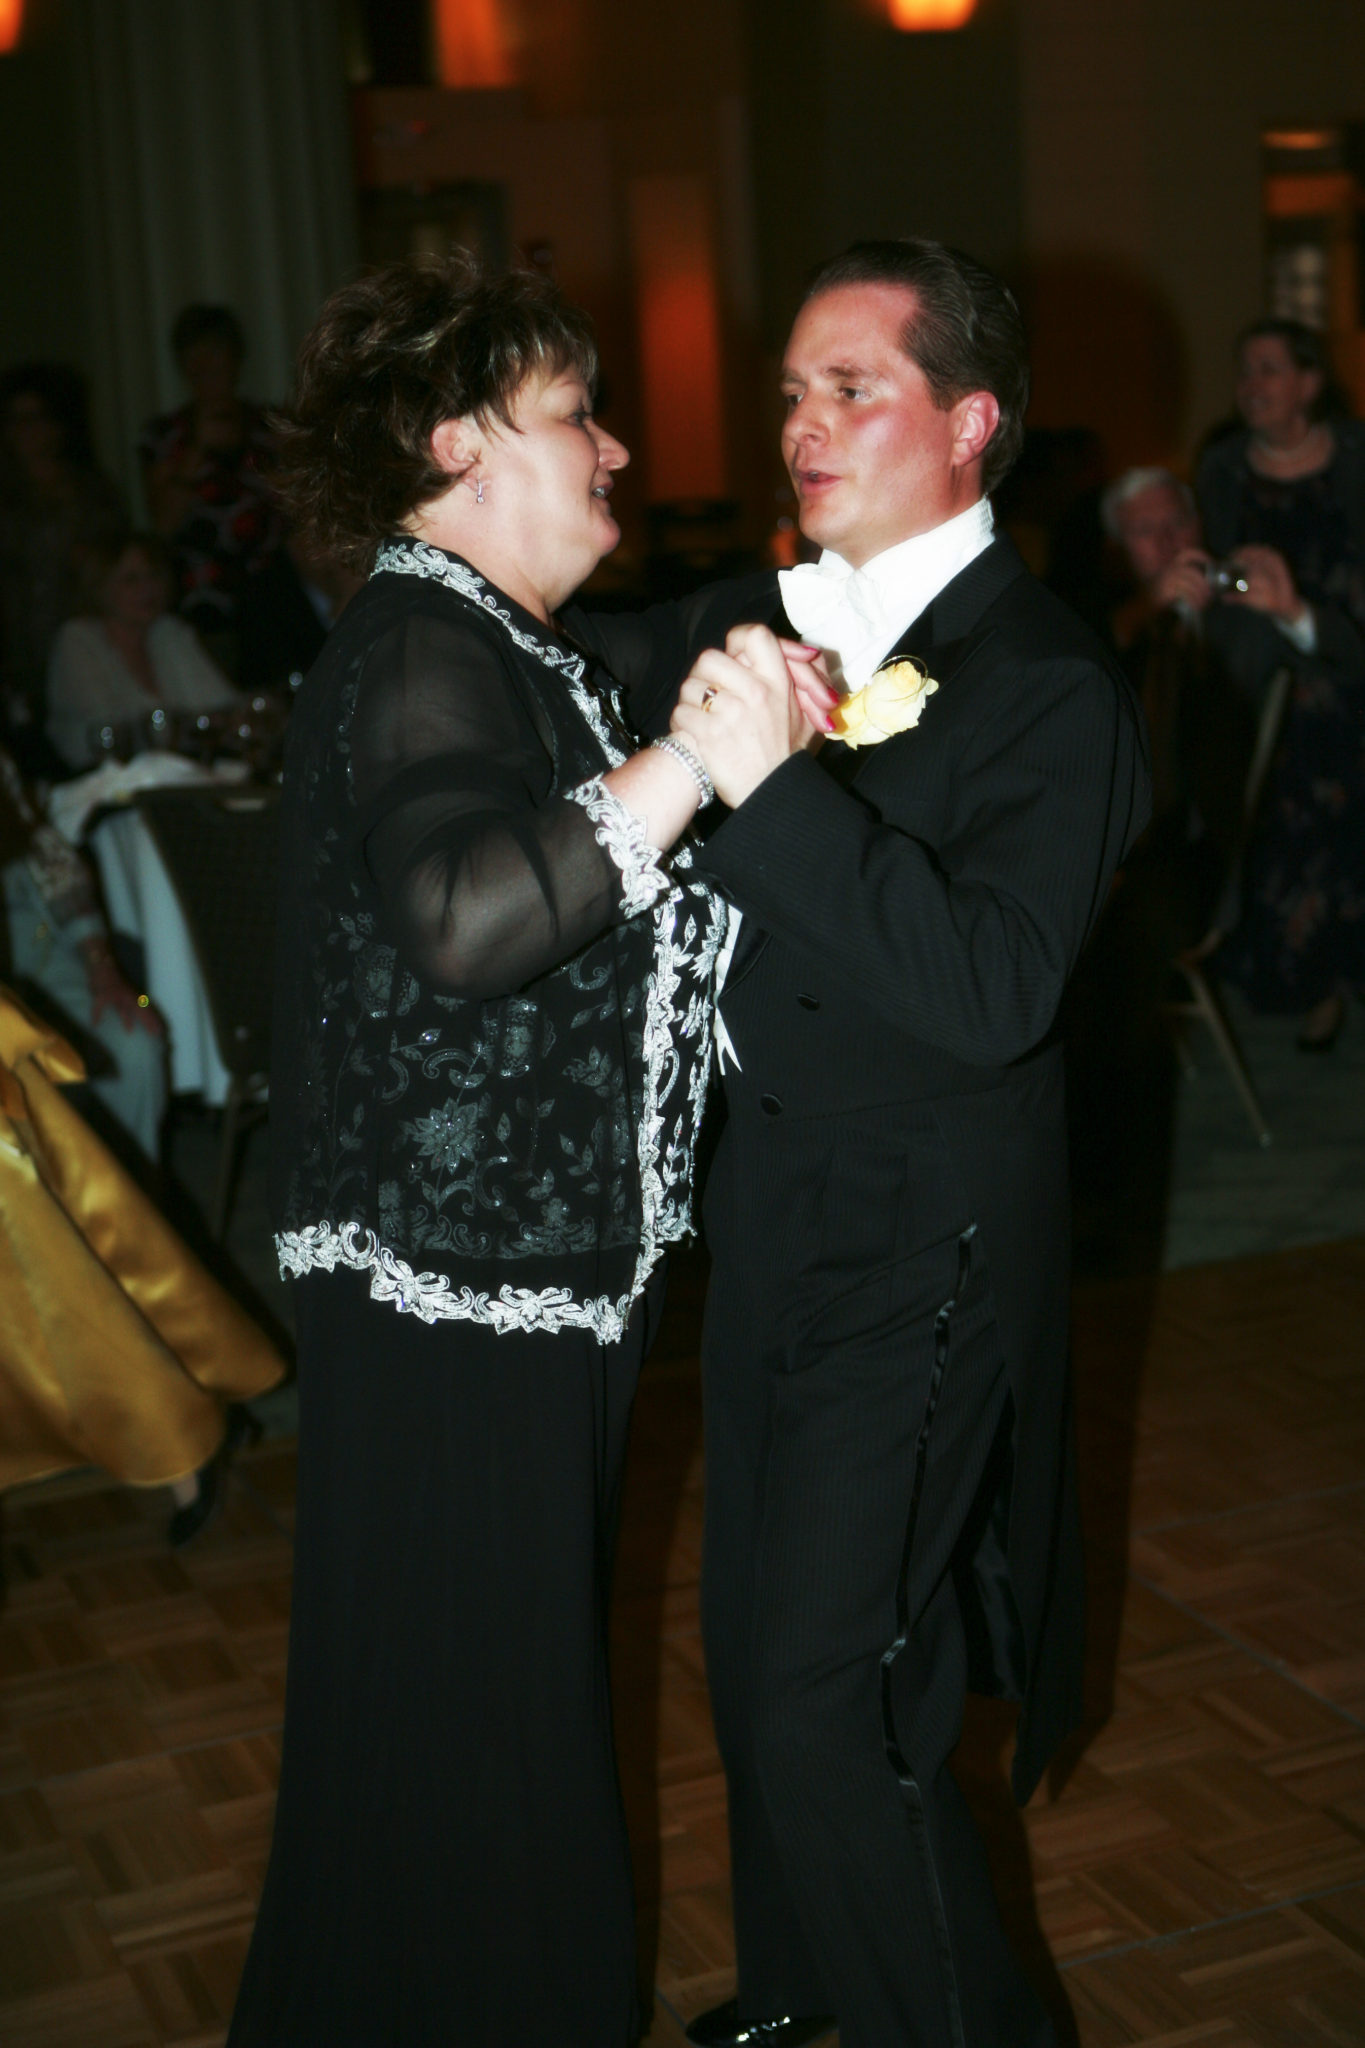 Mother son wedding dance tips for dancing at your wedding craig and sue mother son wedding dance junglespirit Gallery